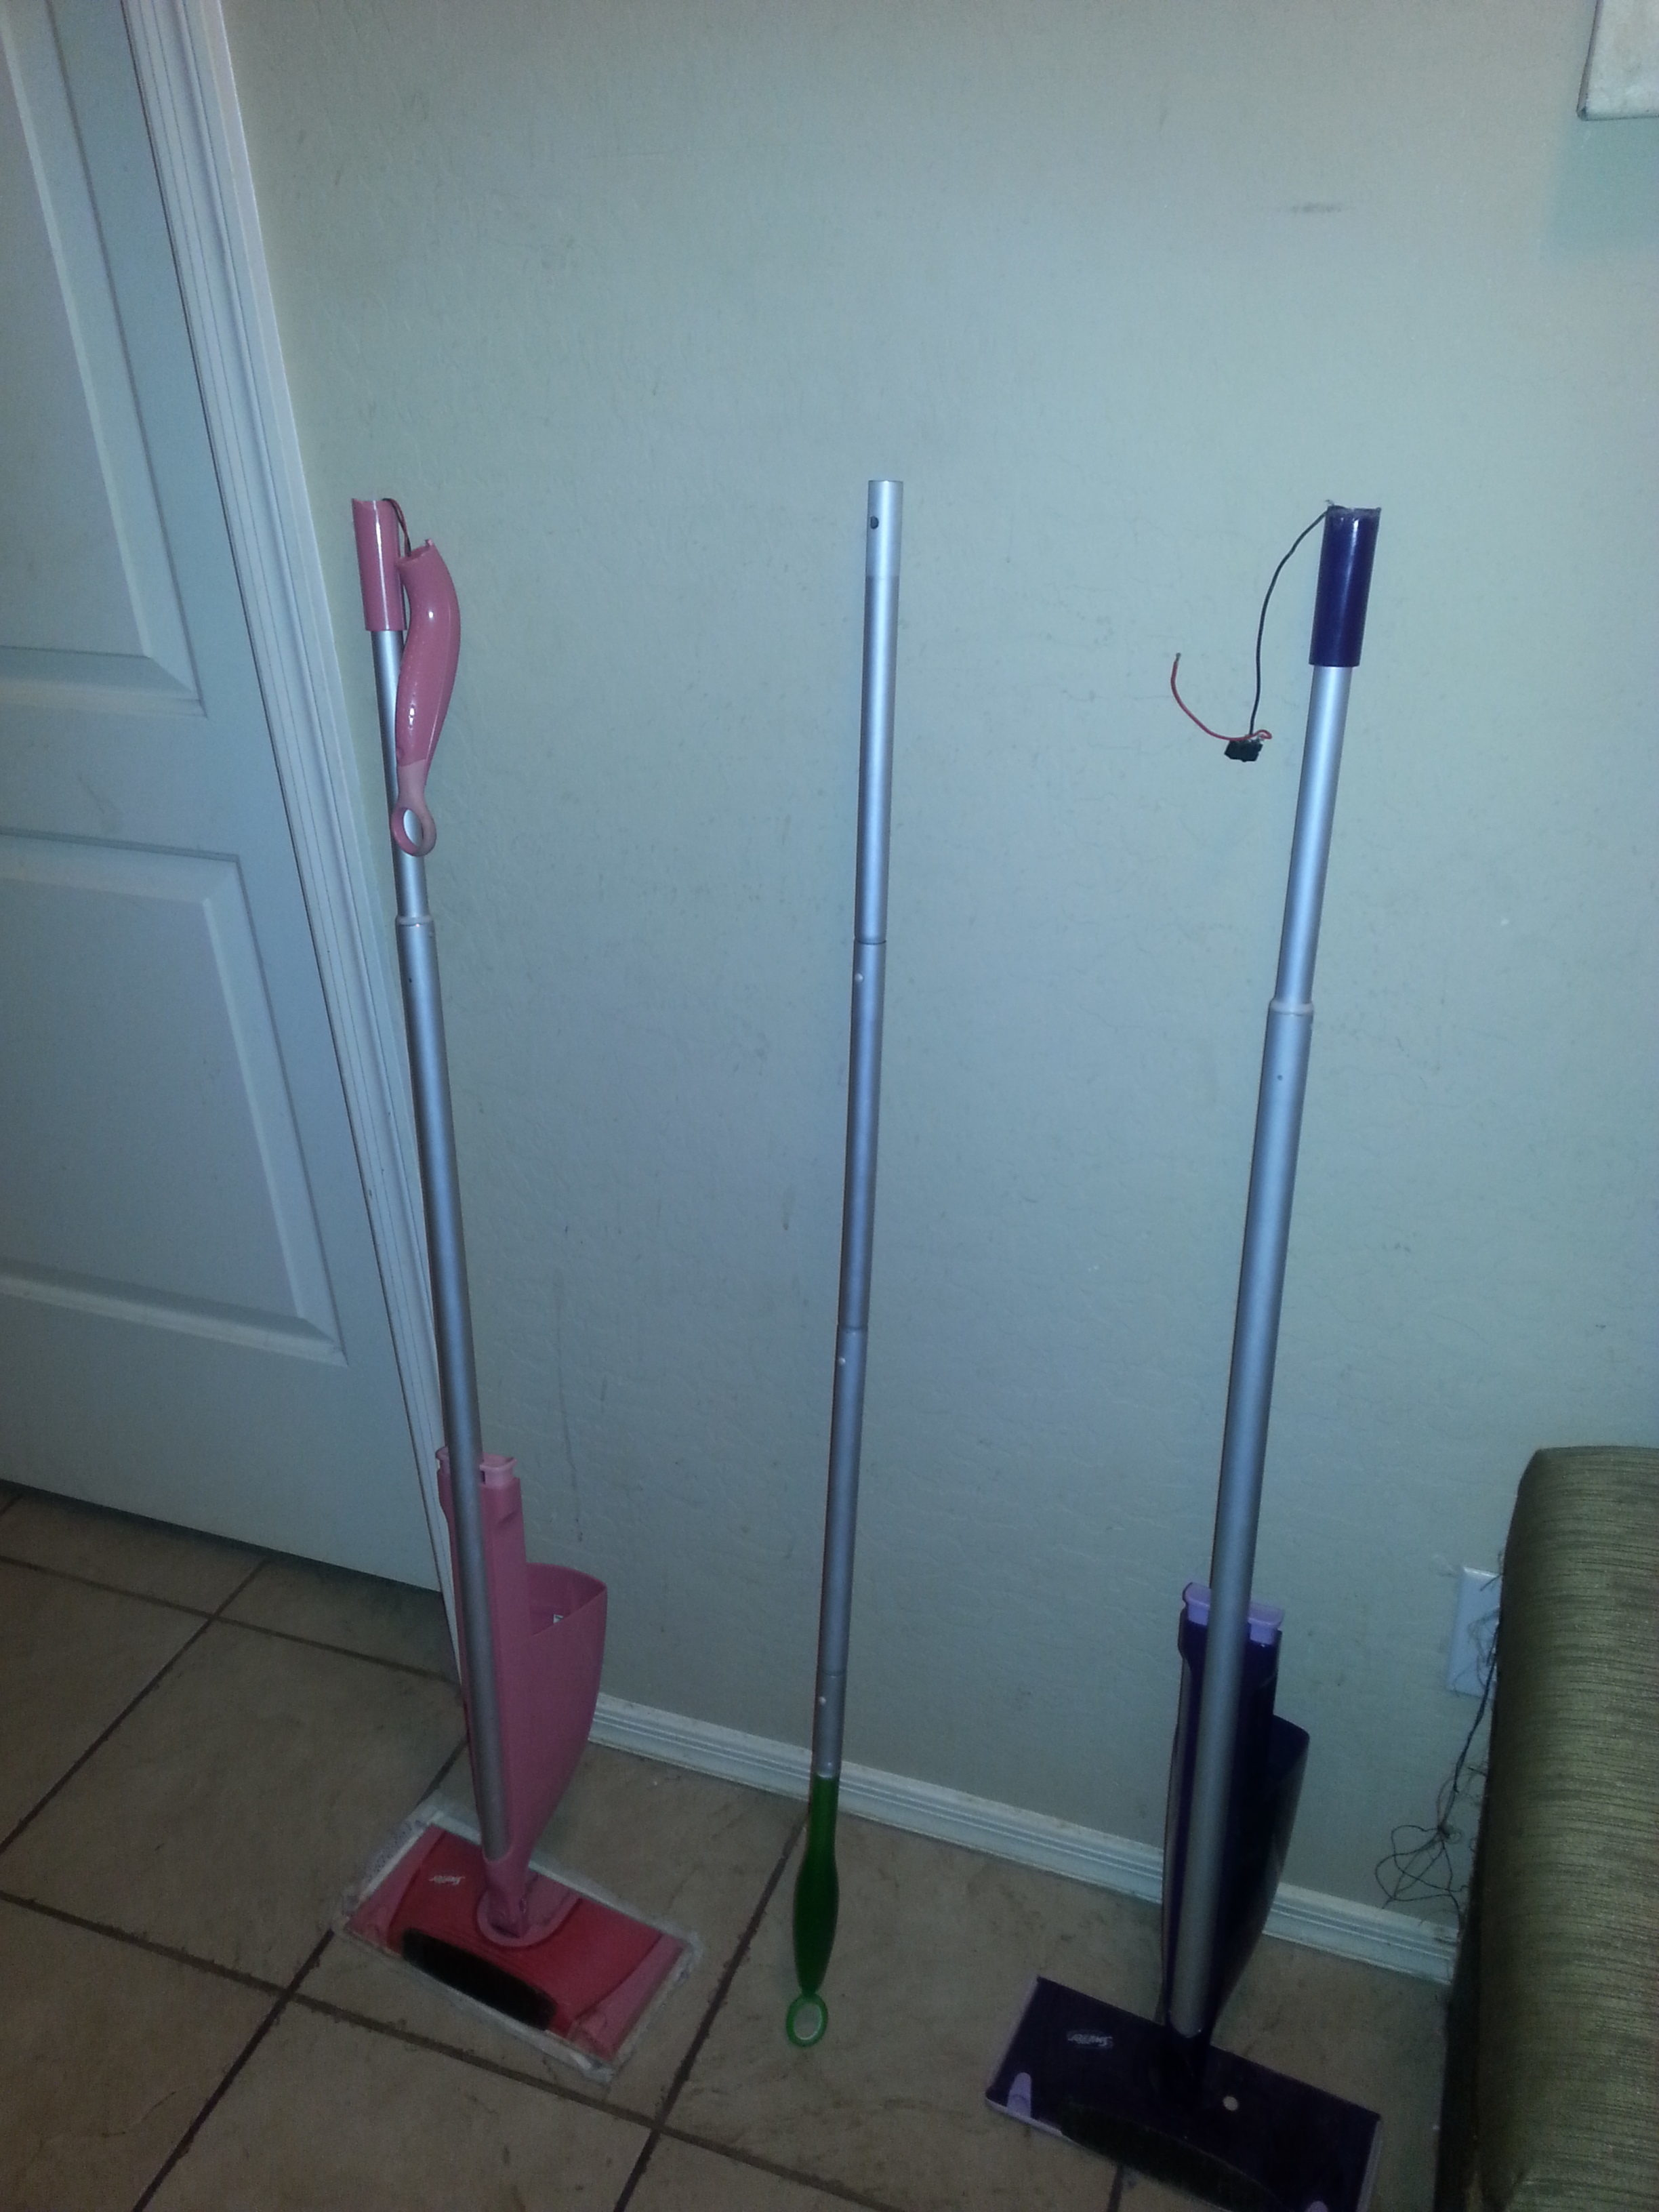 Top 184 Complaints And Reviews About Swiffer Page 2